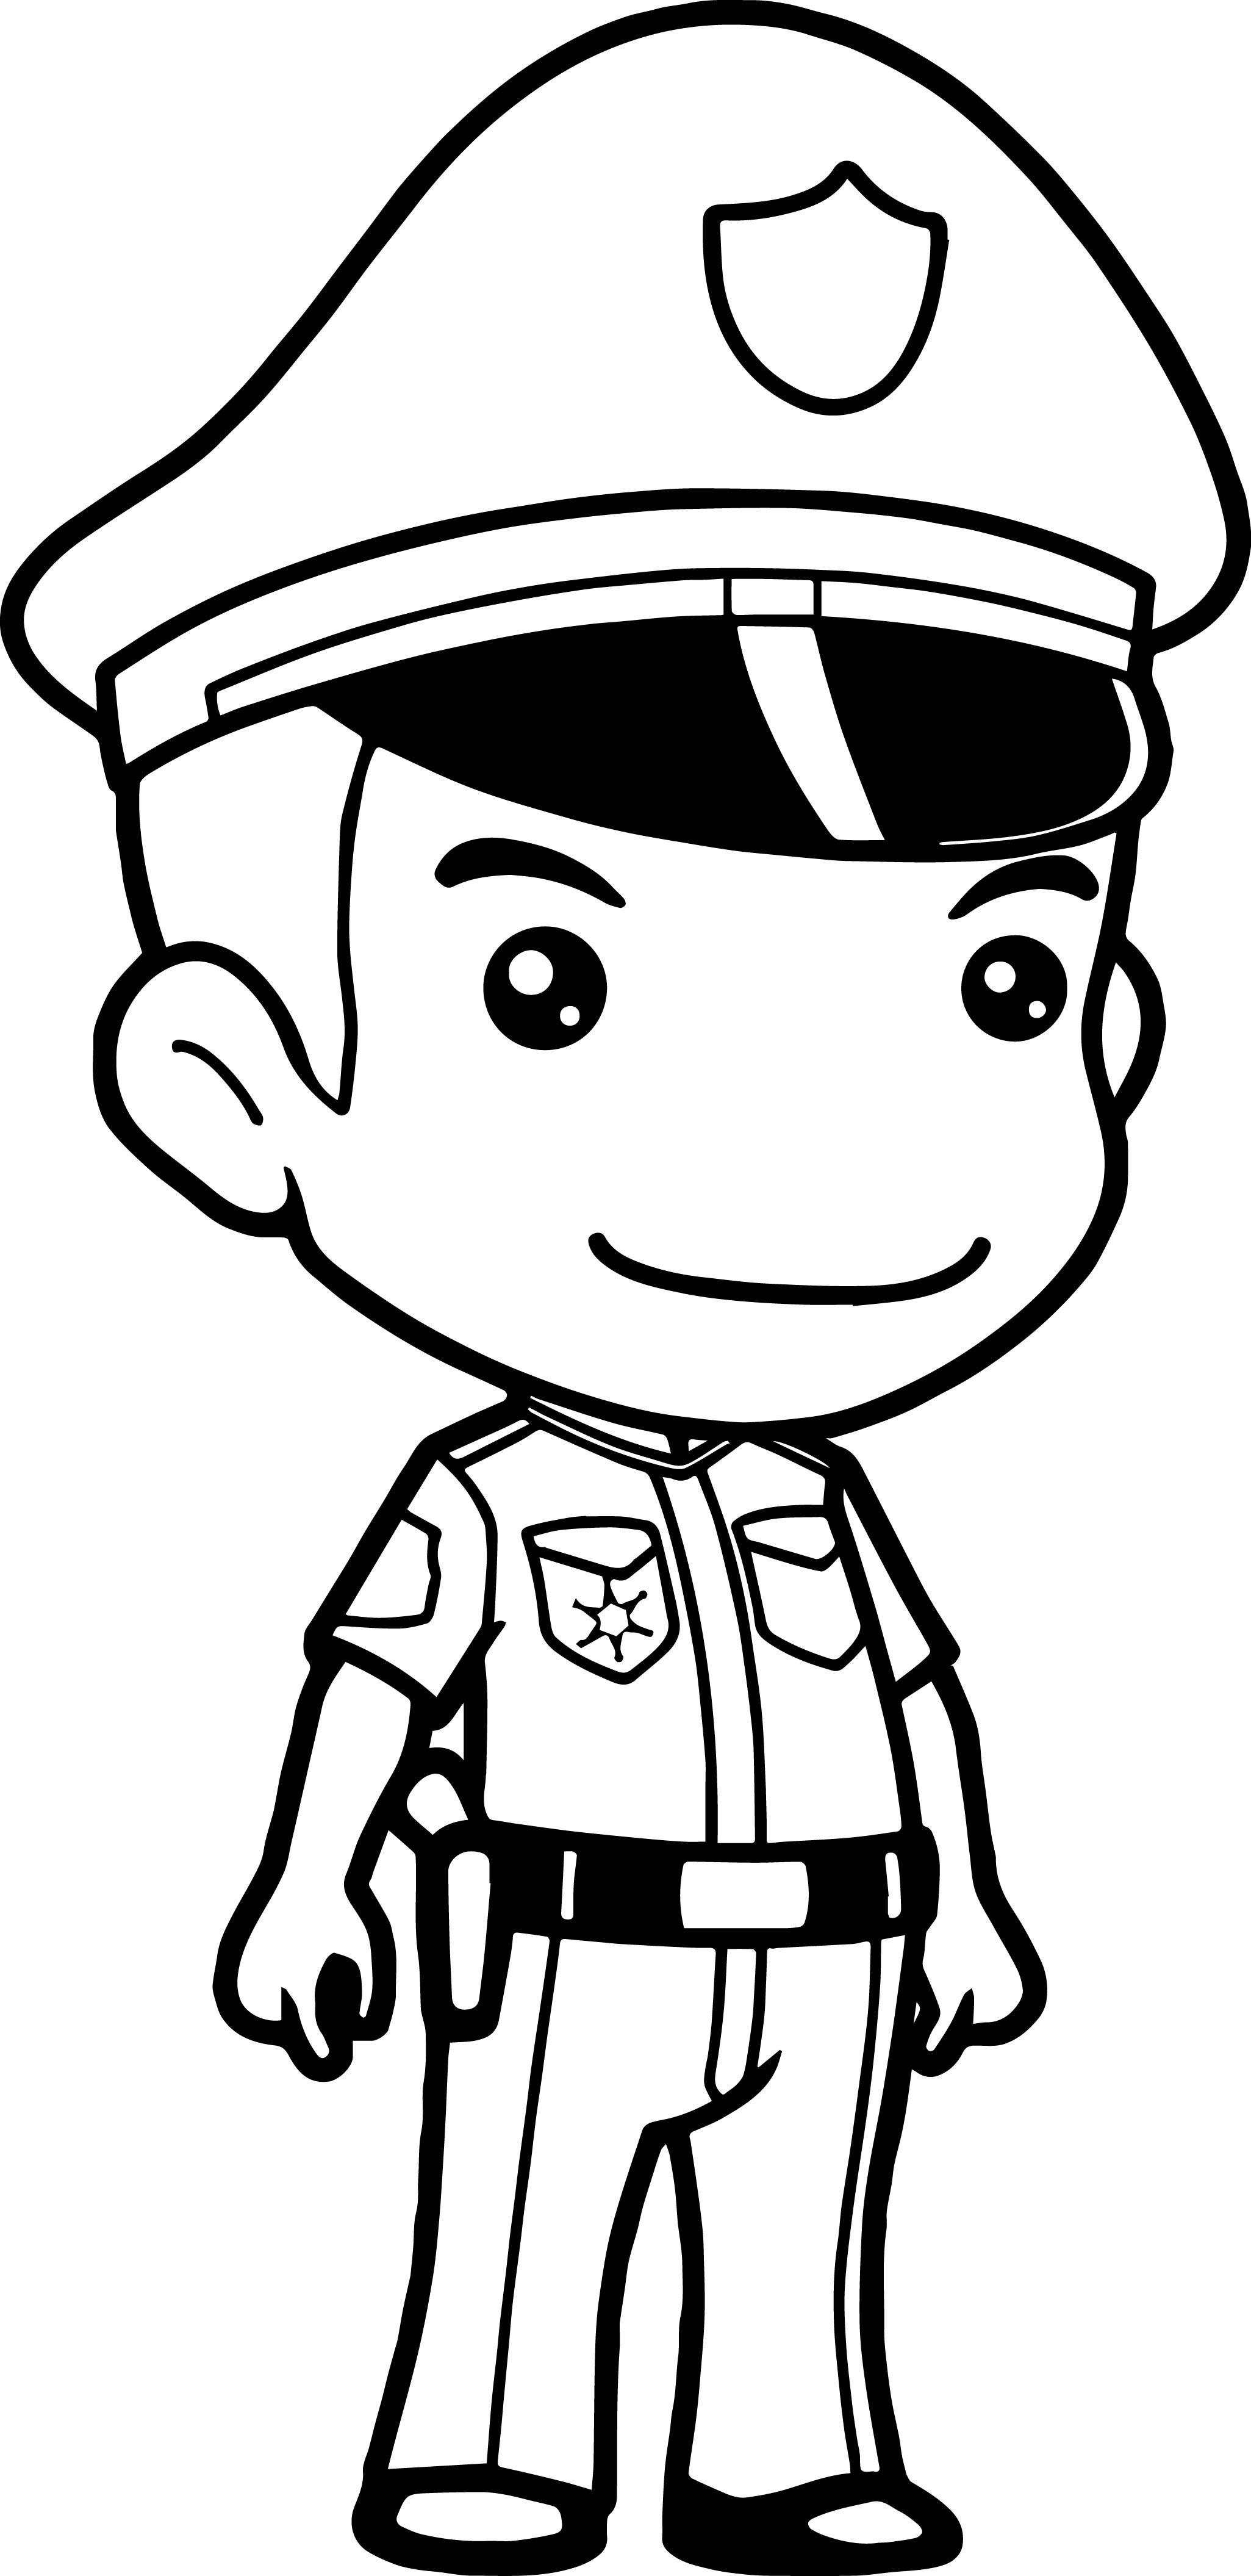 2051x4222 Marvelous Police Officer Coloring Pages Printable To Fancy Free